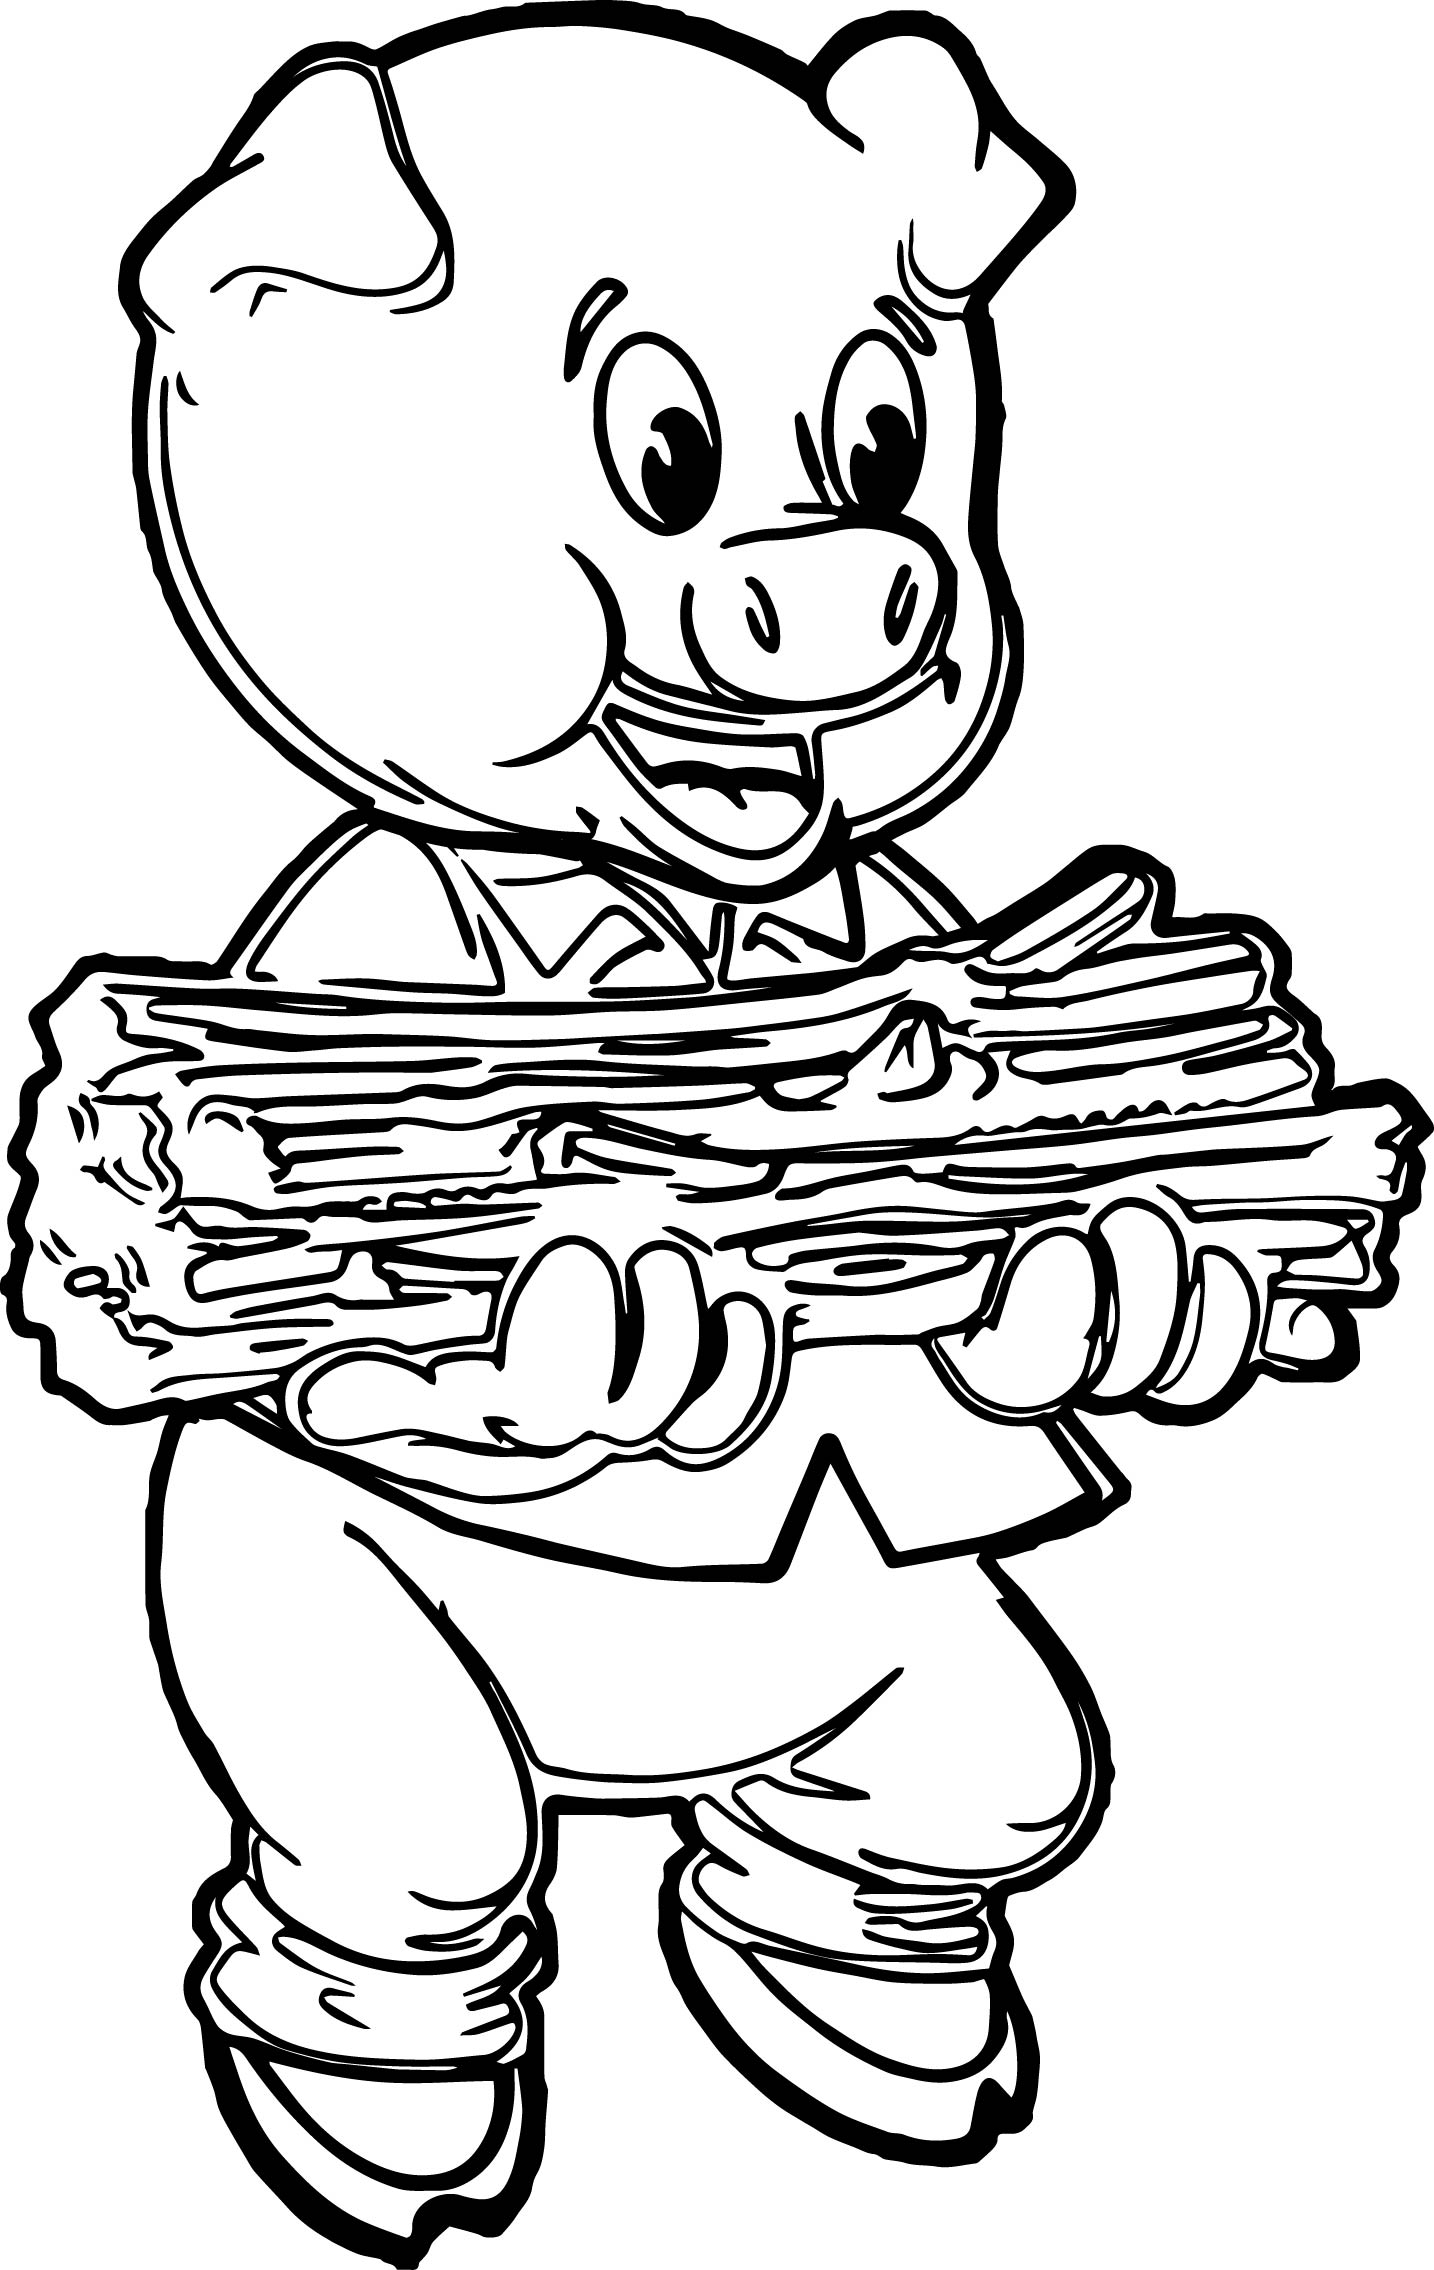 1434x2270 Printable Pig Coloring Pages For Kids Page Animal Minecraft Three